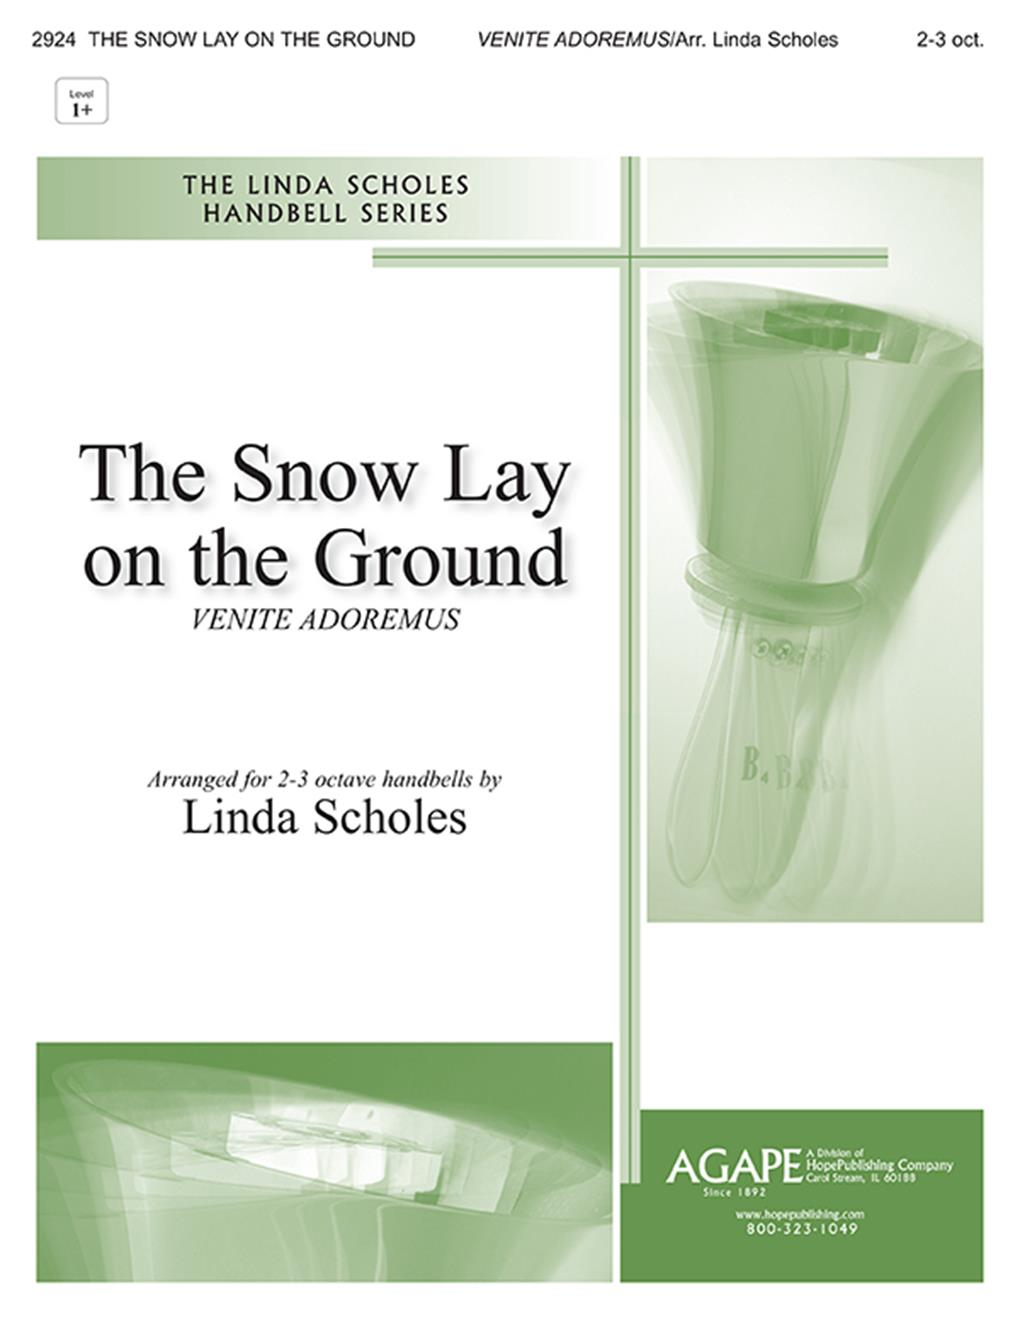 Snow Lay on the Ground The - 2-3 Oct. Cover Image